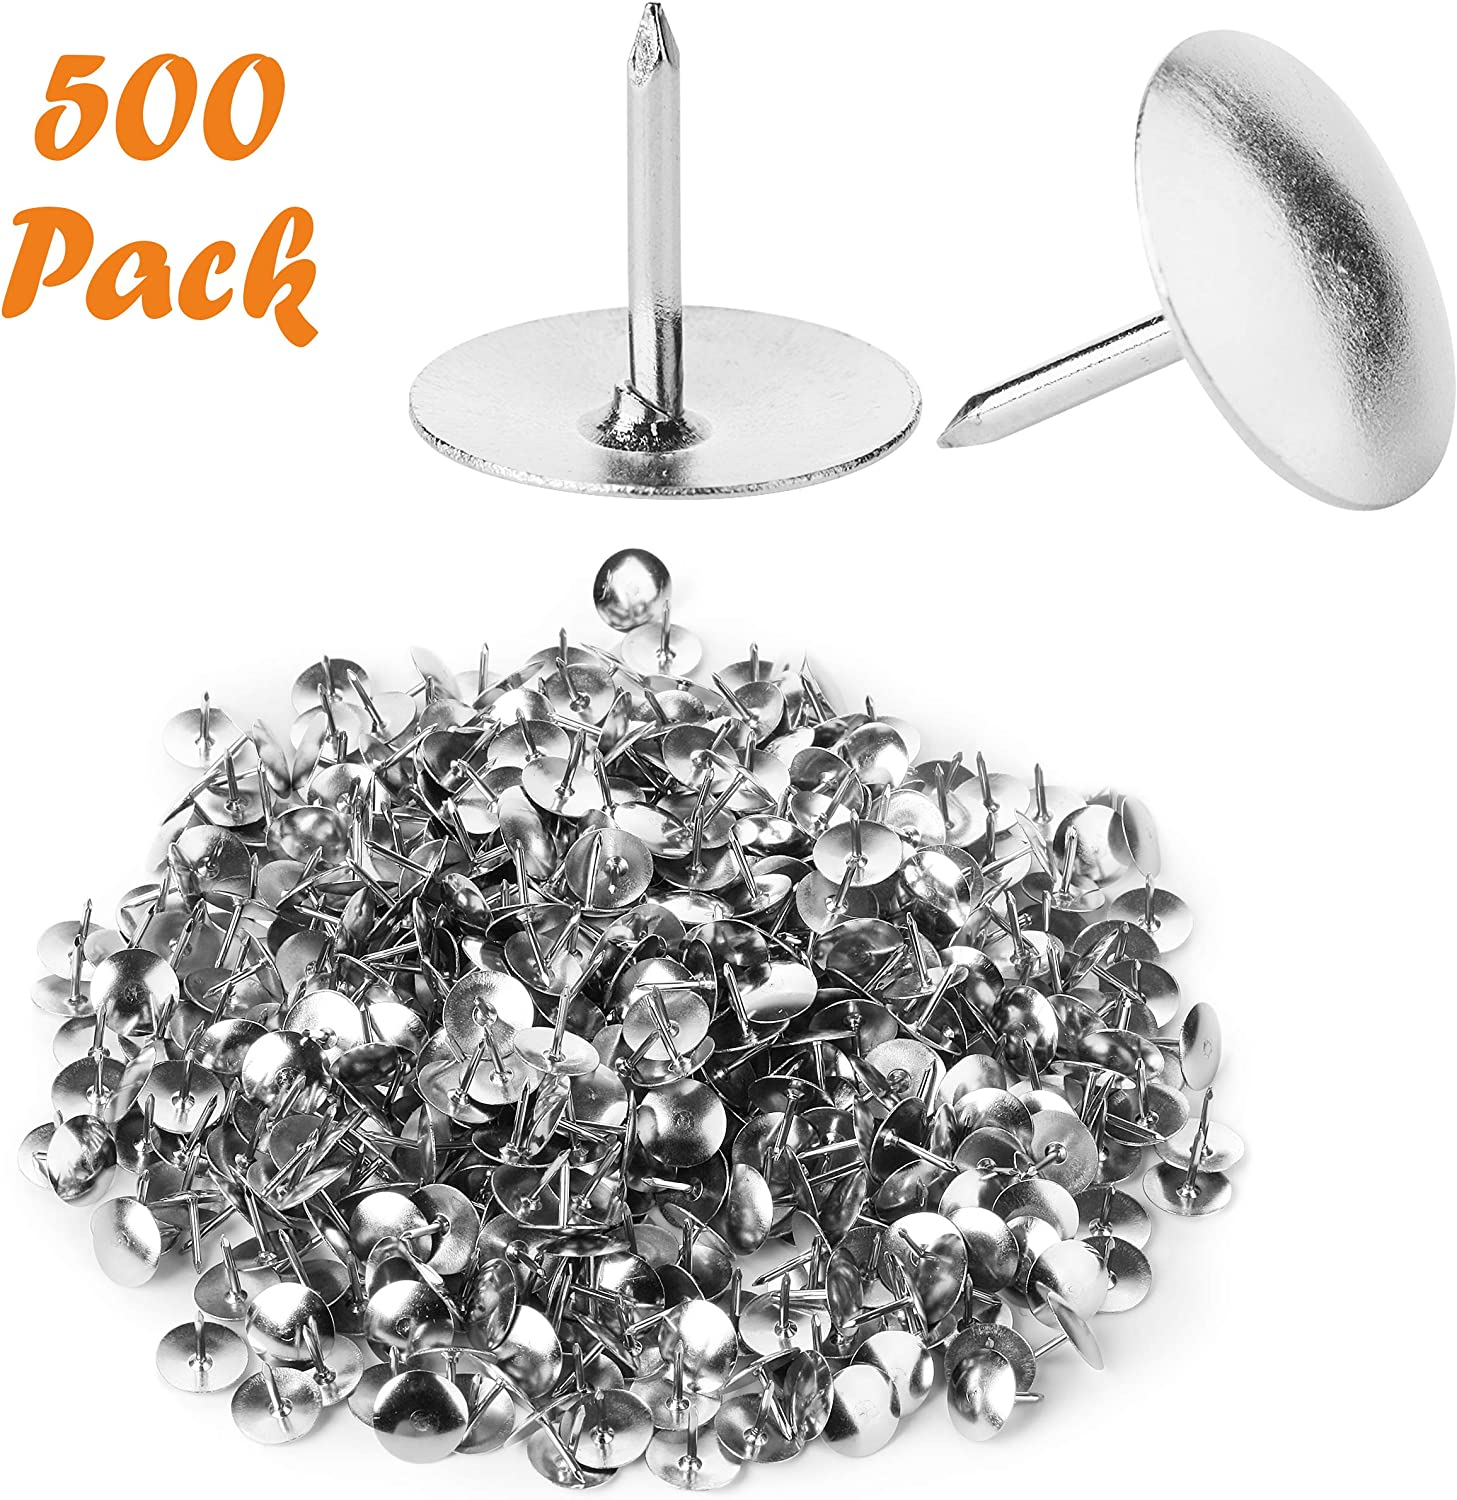 Mr. Pen Thumb Tack, Flat Push Pins, 500 Pack